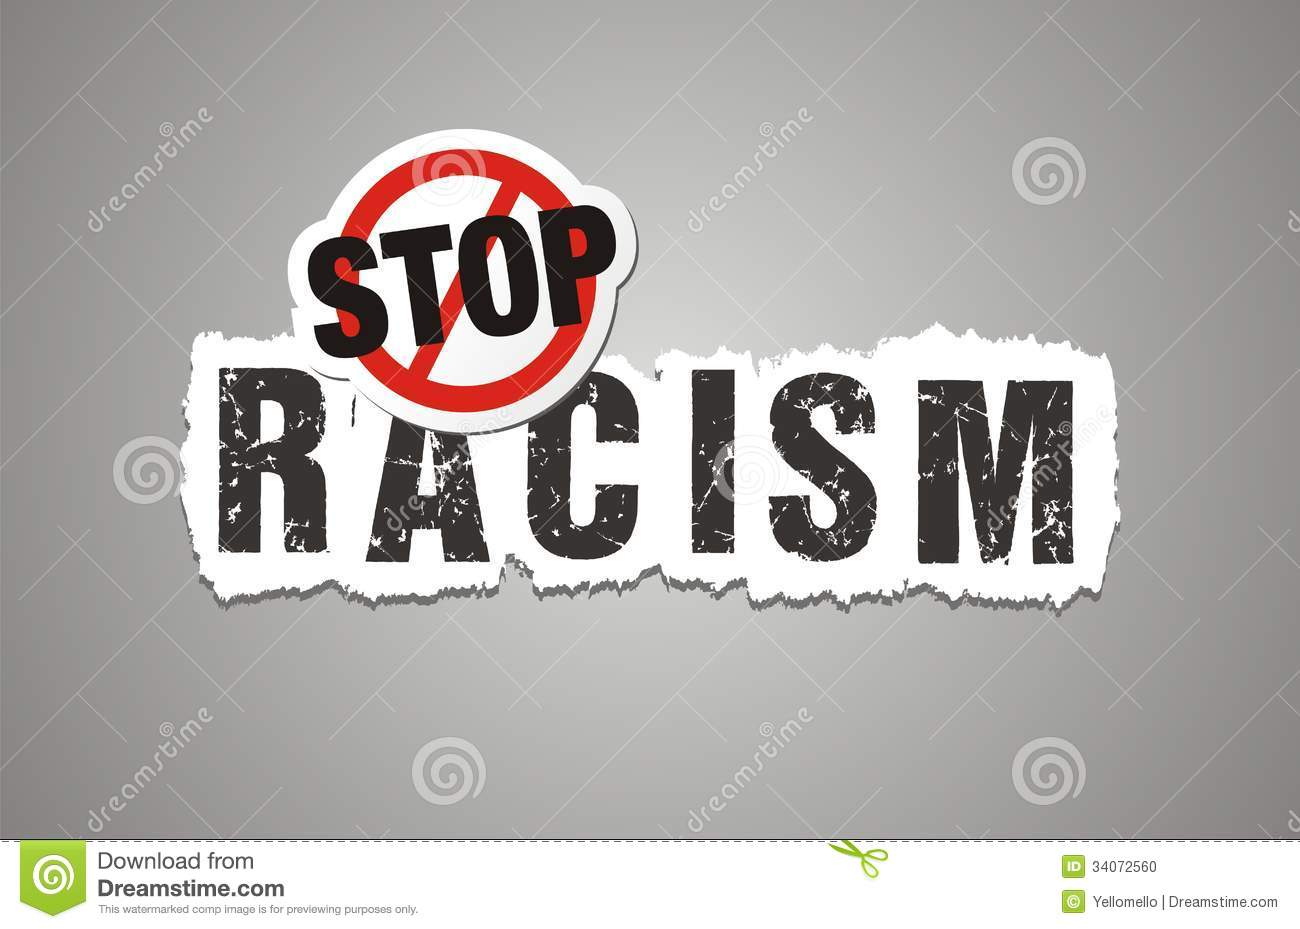 Stop Racism Poster, Beckdrop, Banner Stock Photo - Image: 34072560